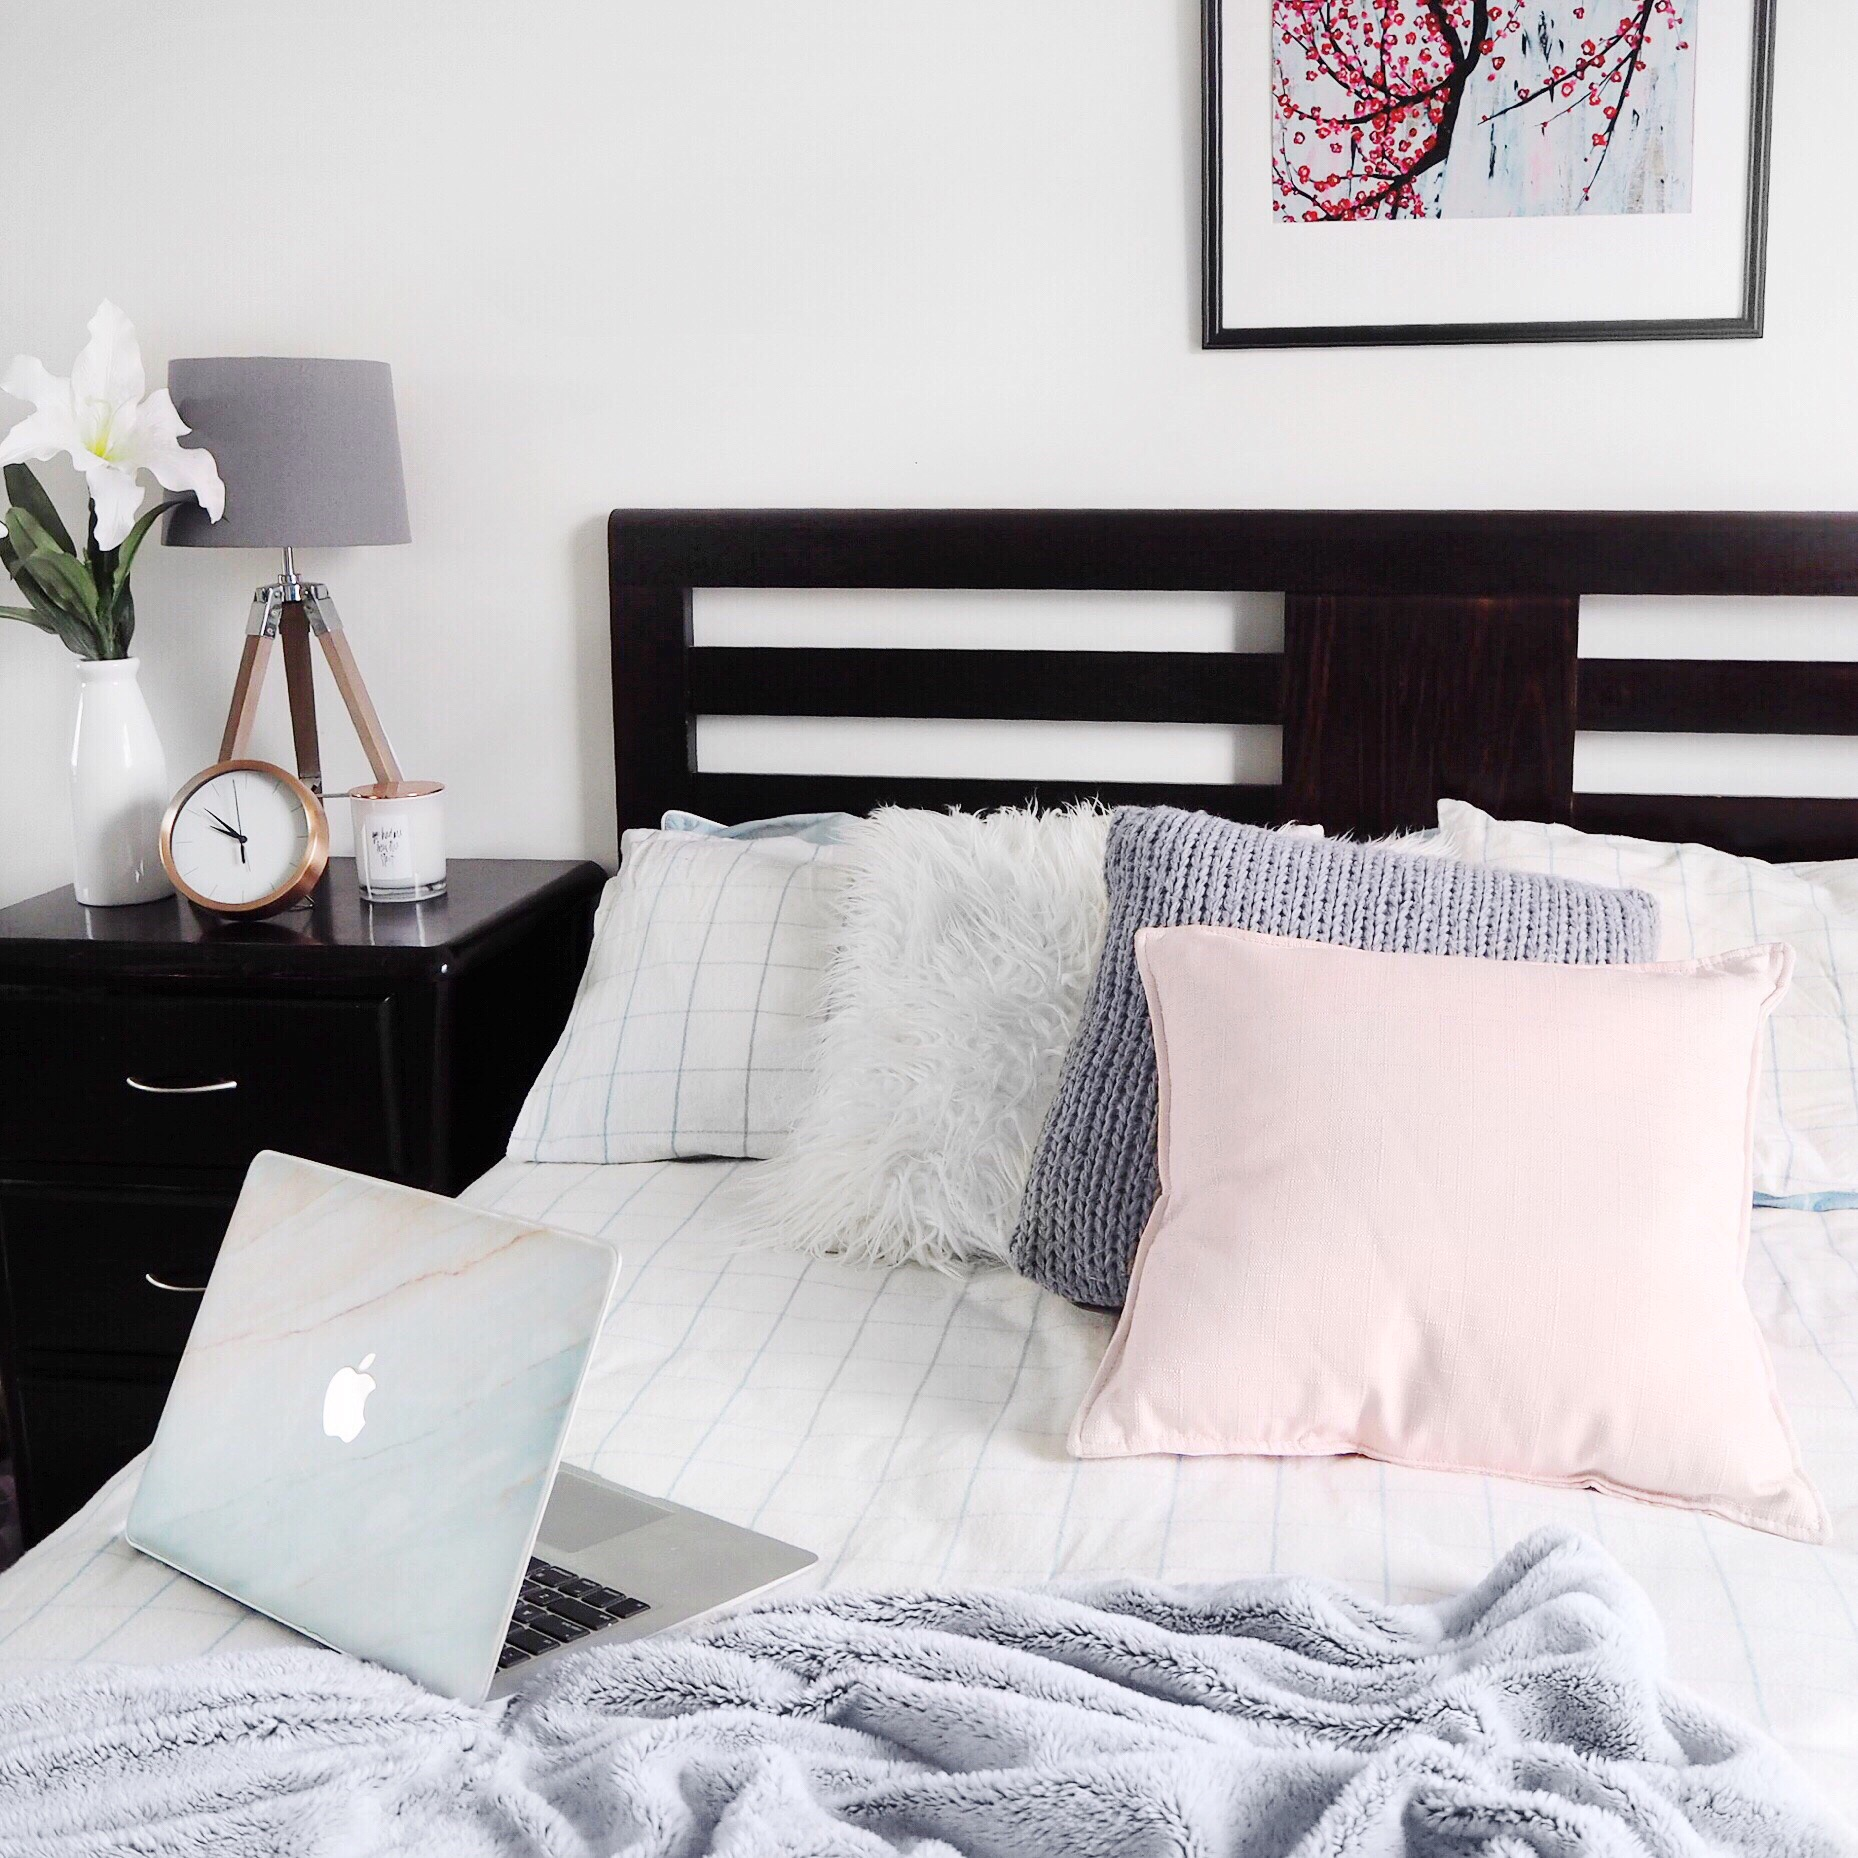 8 Blush & Grey Home Decor Items For The Bedroom